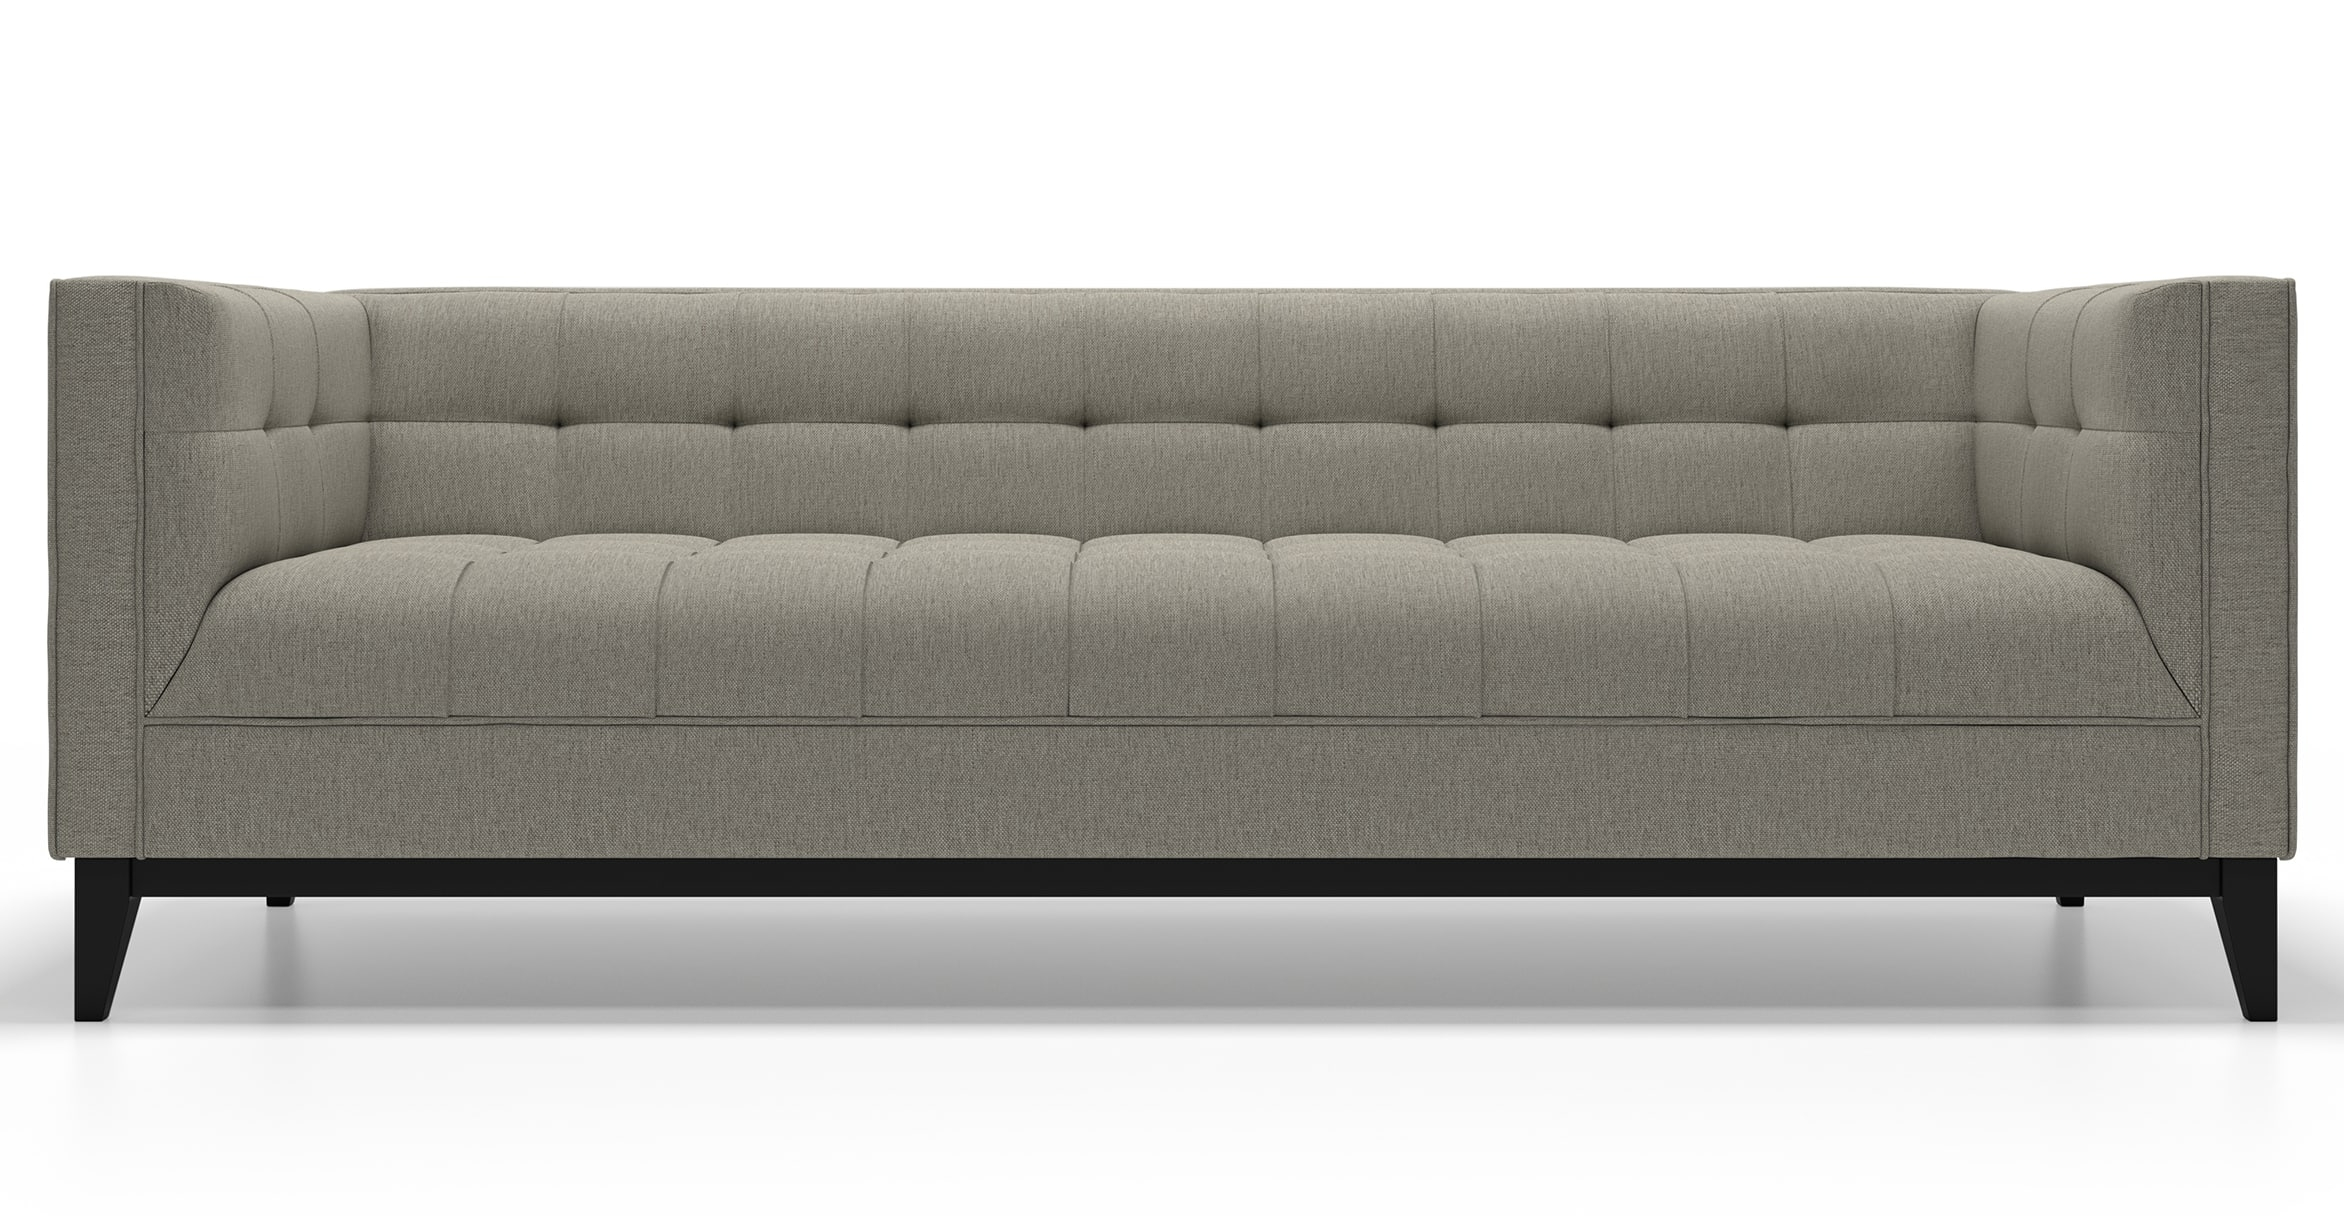 Modern Sofas Regarding Most Current Mid Century Modern Sofas, Alcott In Fabric (View 13 of 20)